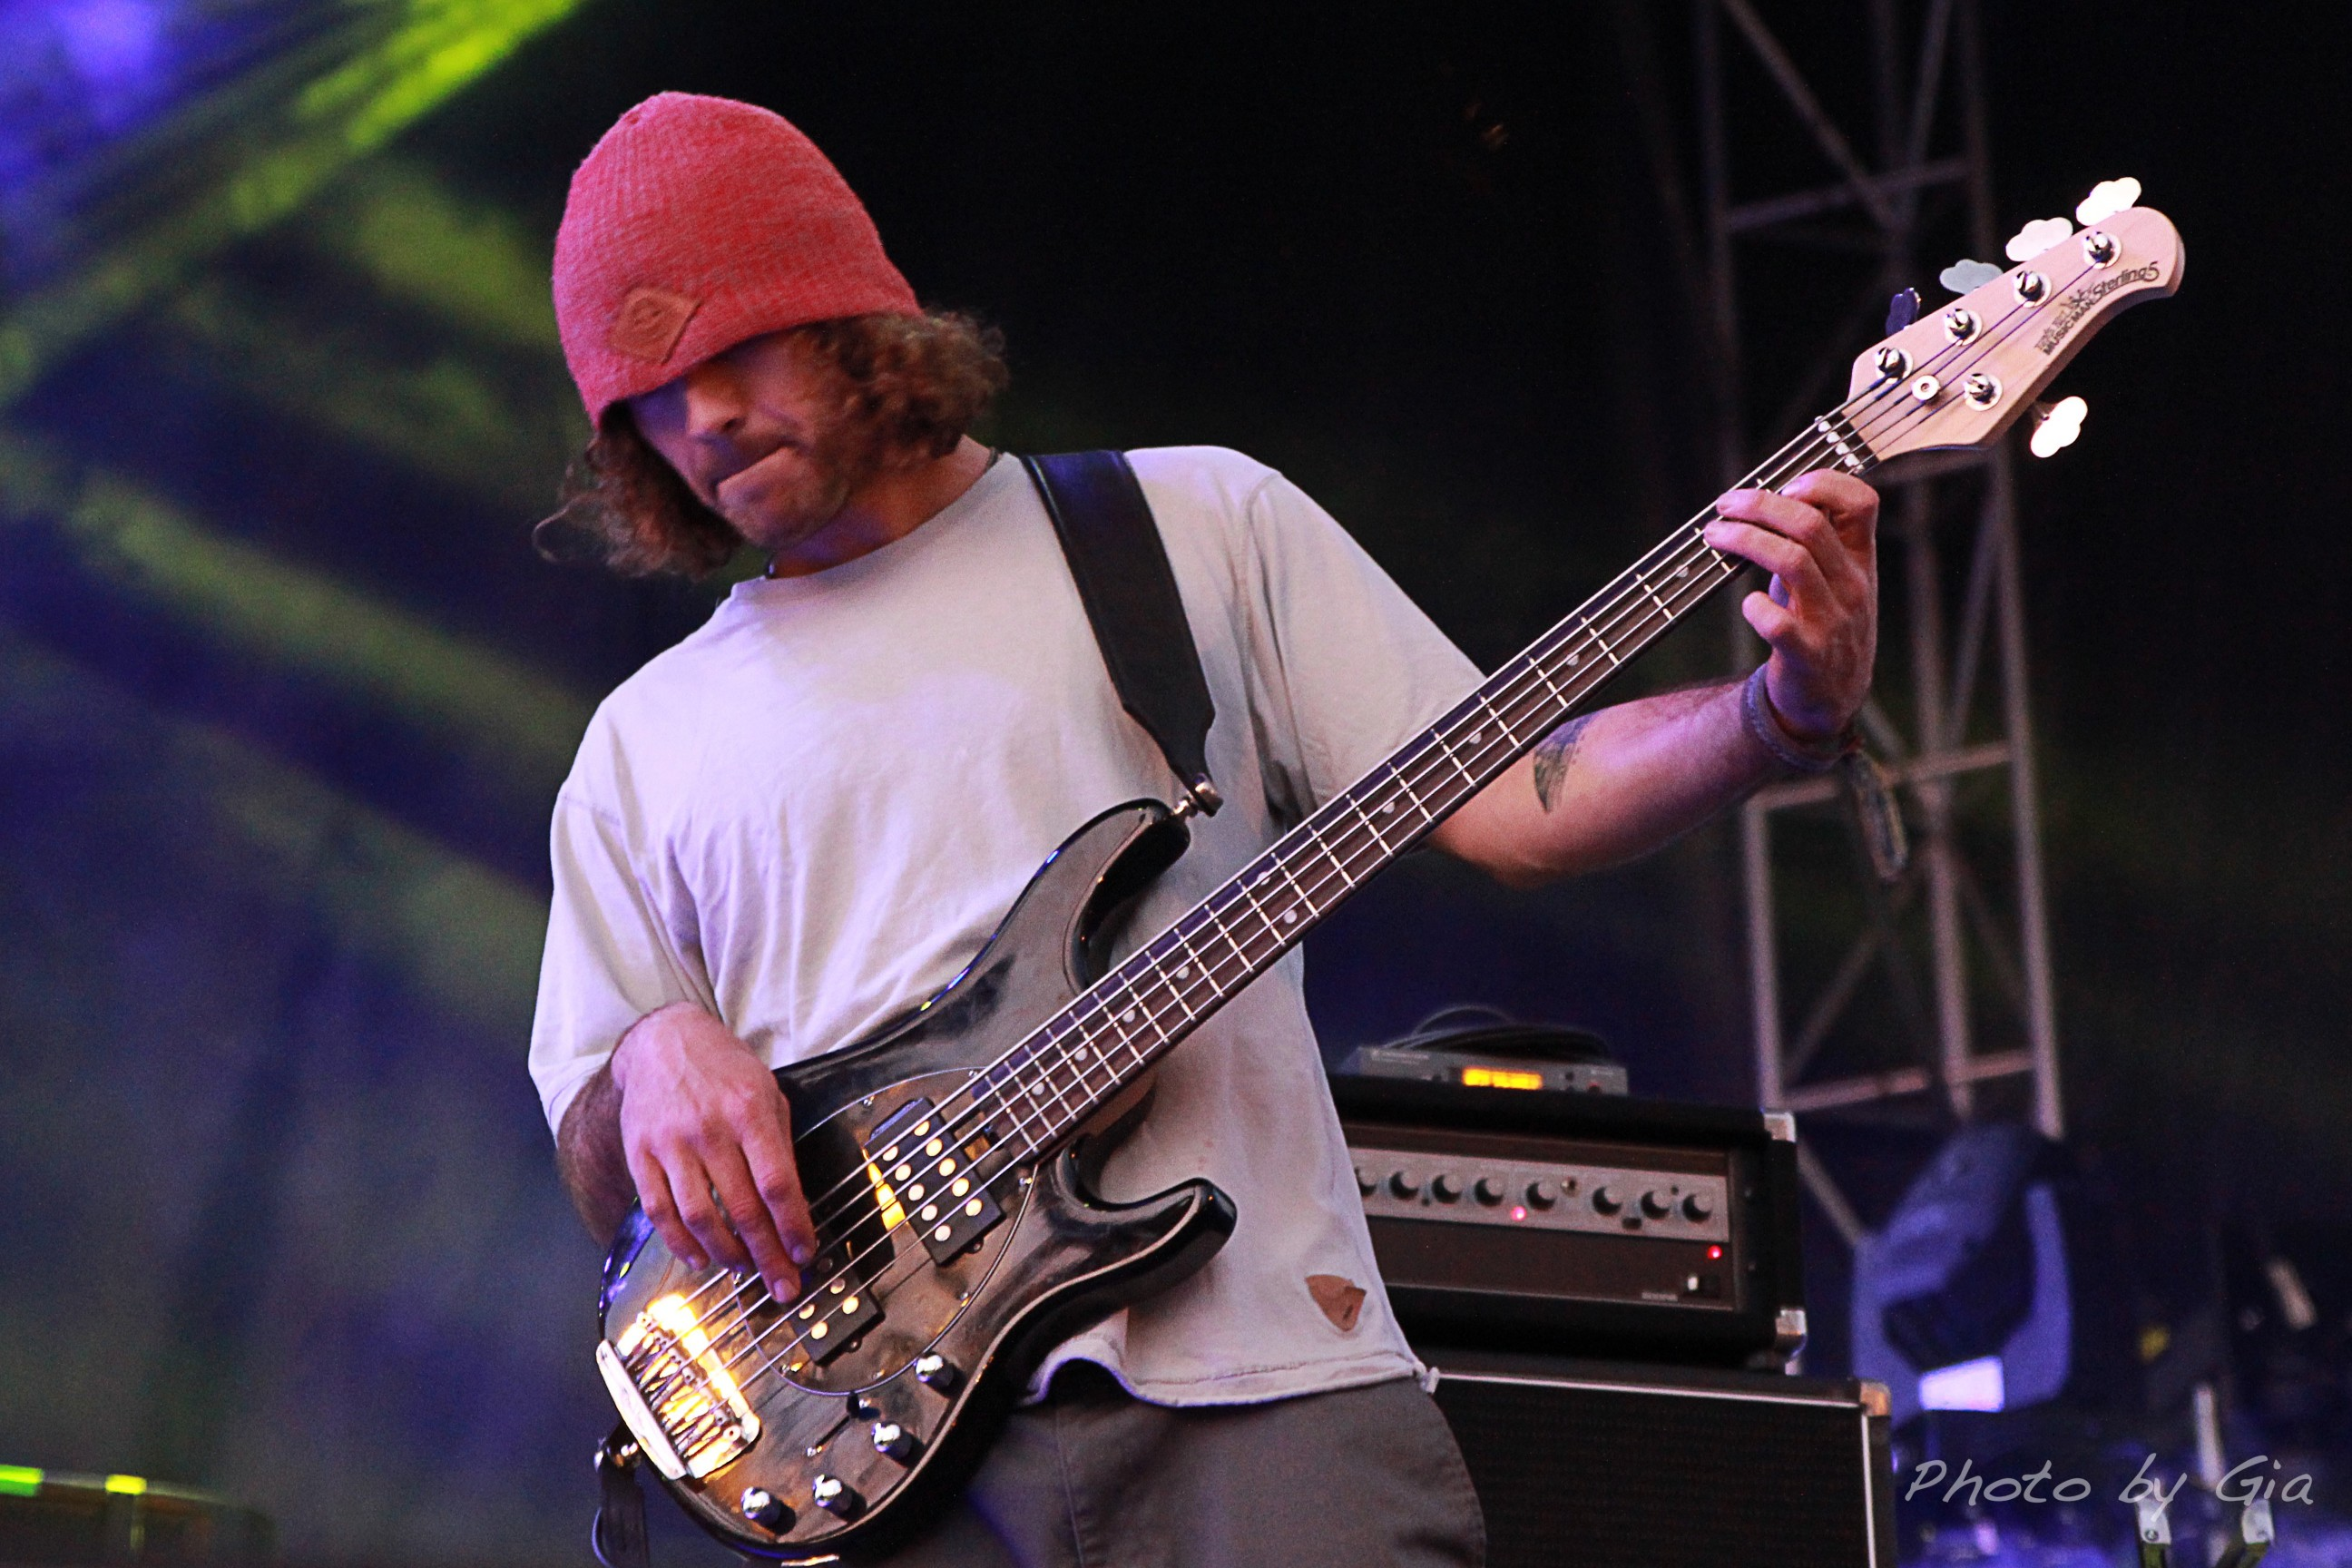 Tommy Suliman/bassist For Stick Figure